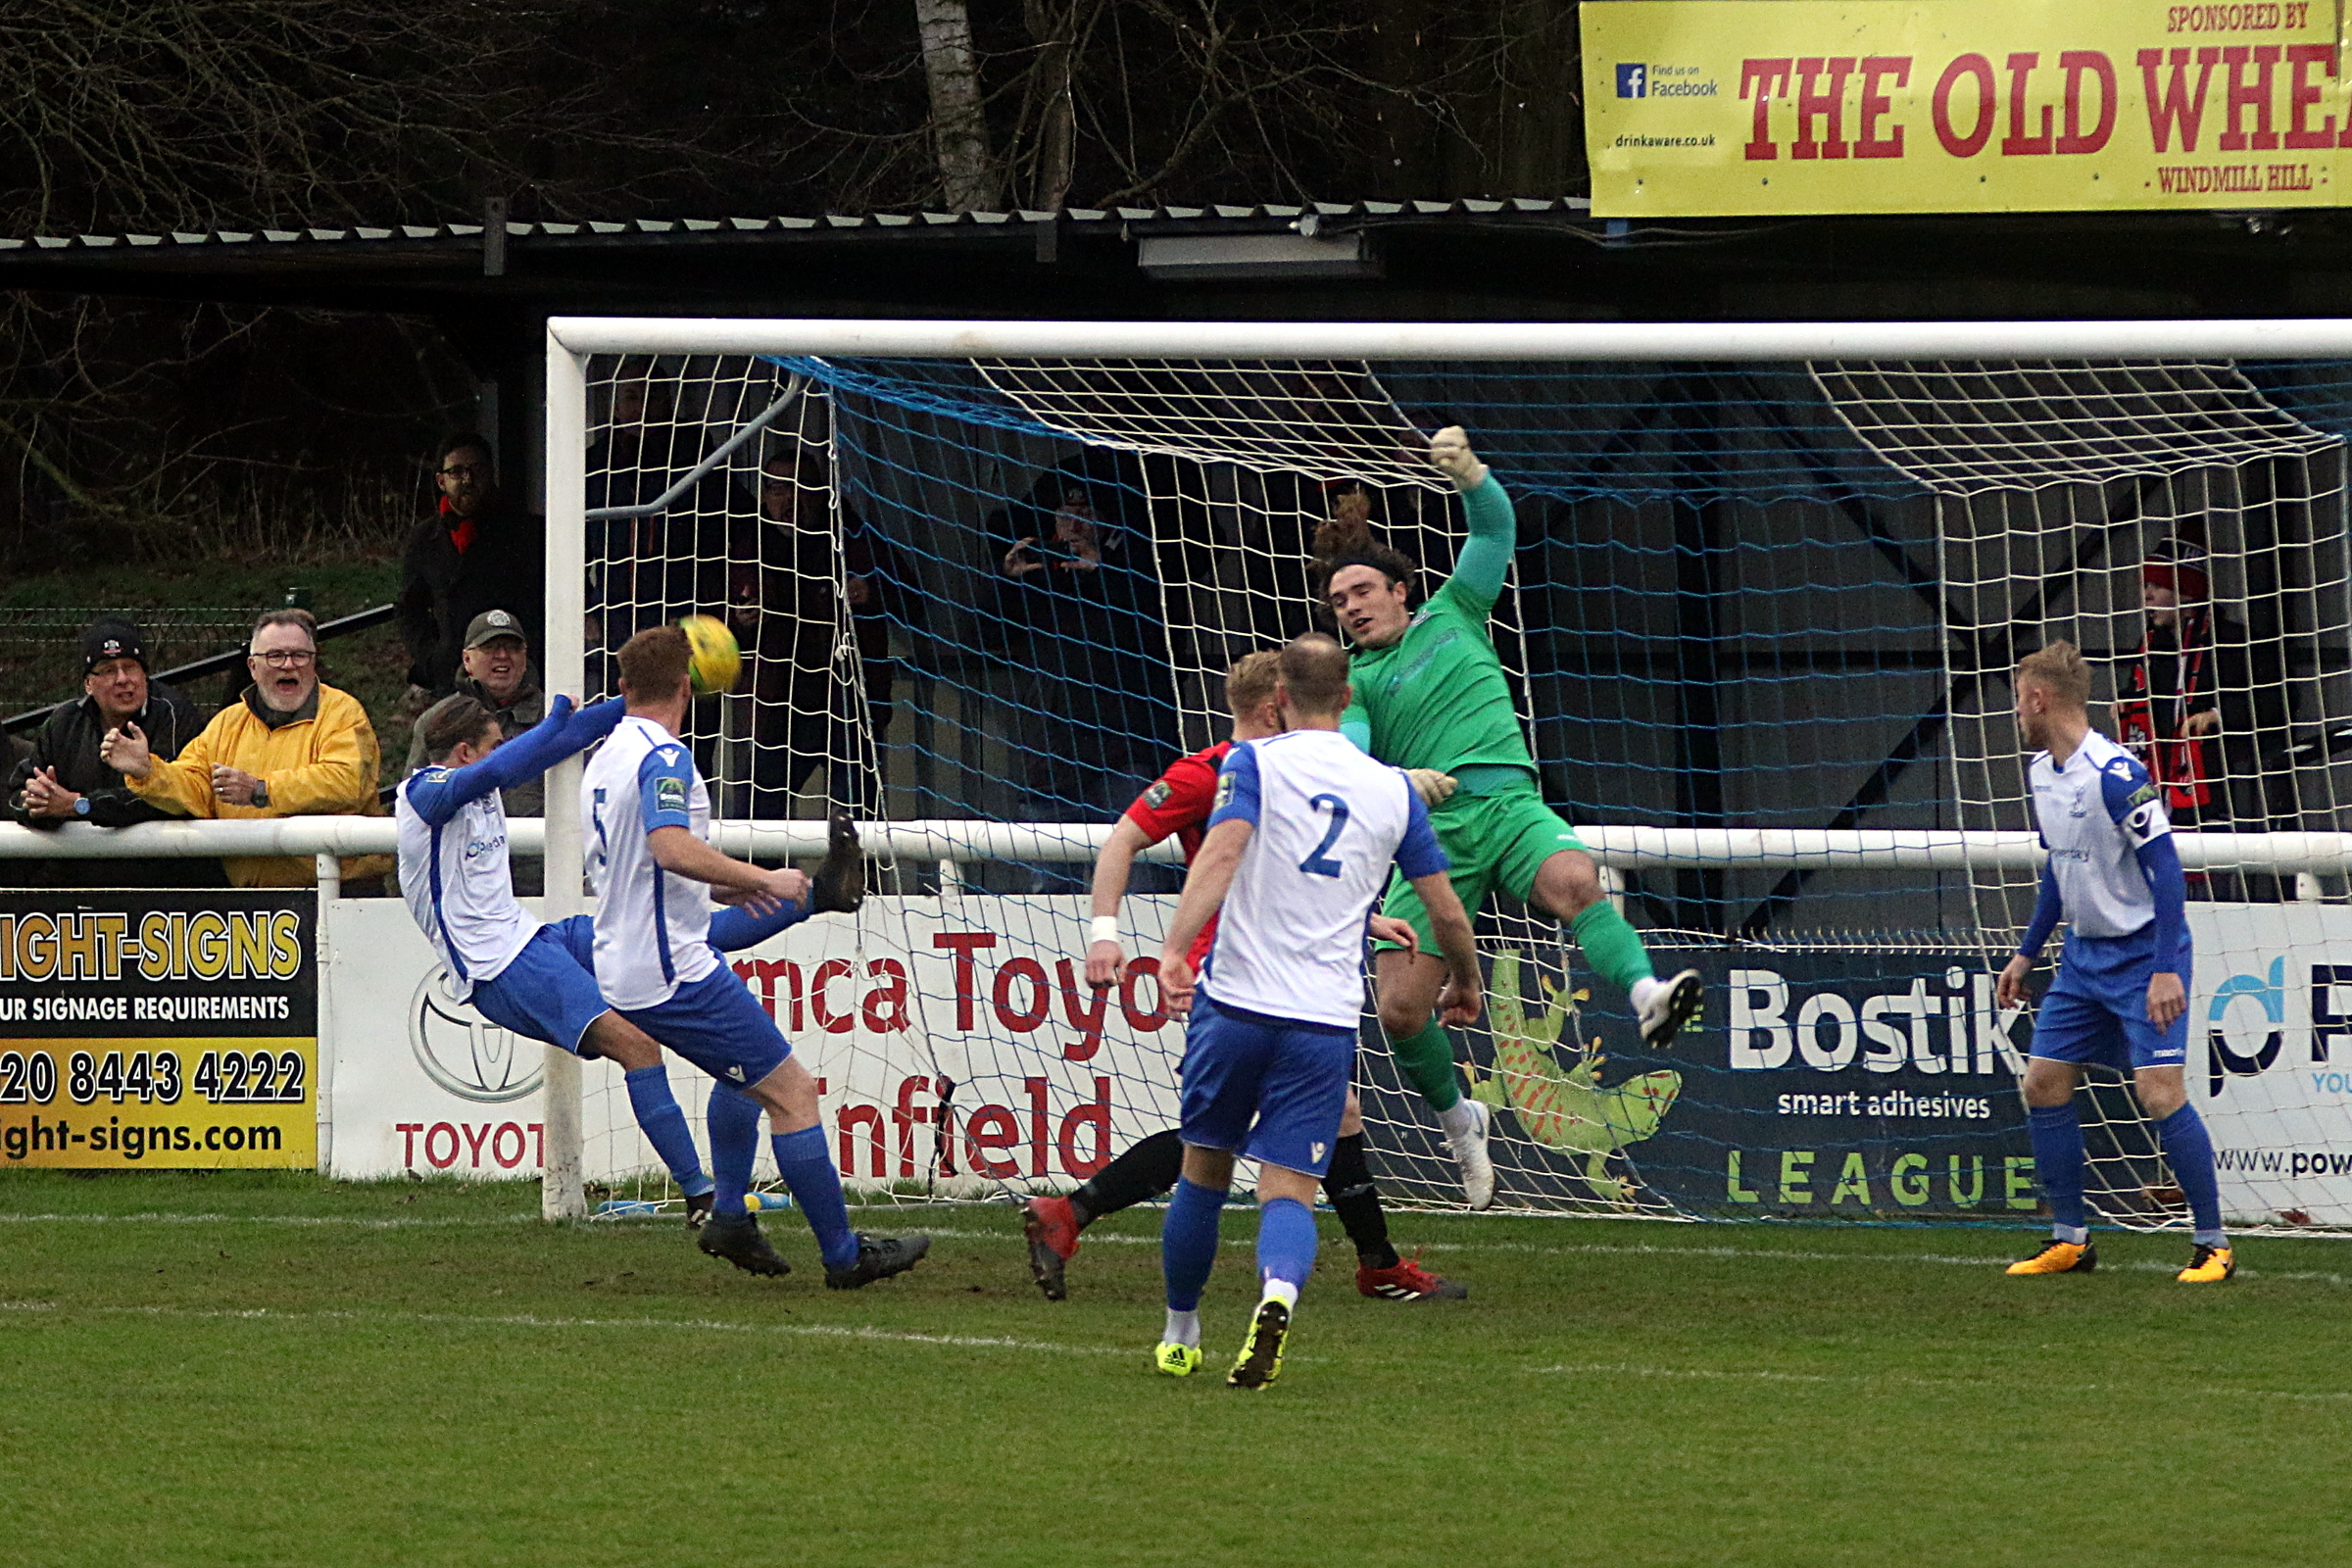 Sam Youngs produced this superb goalline clearance at the start of the game. Picture: Phil Davison